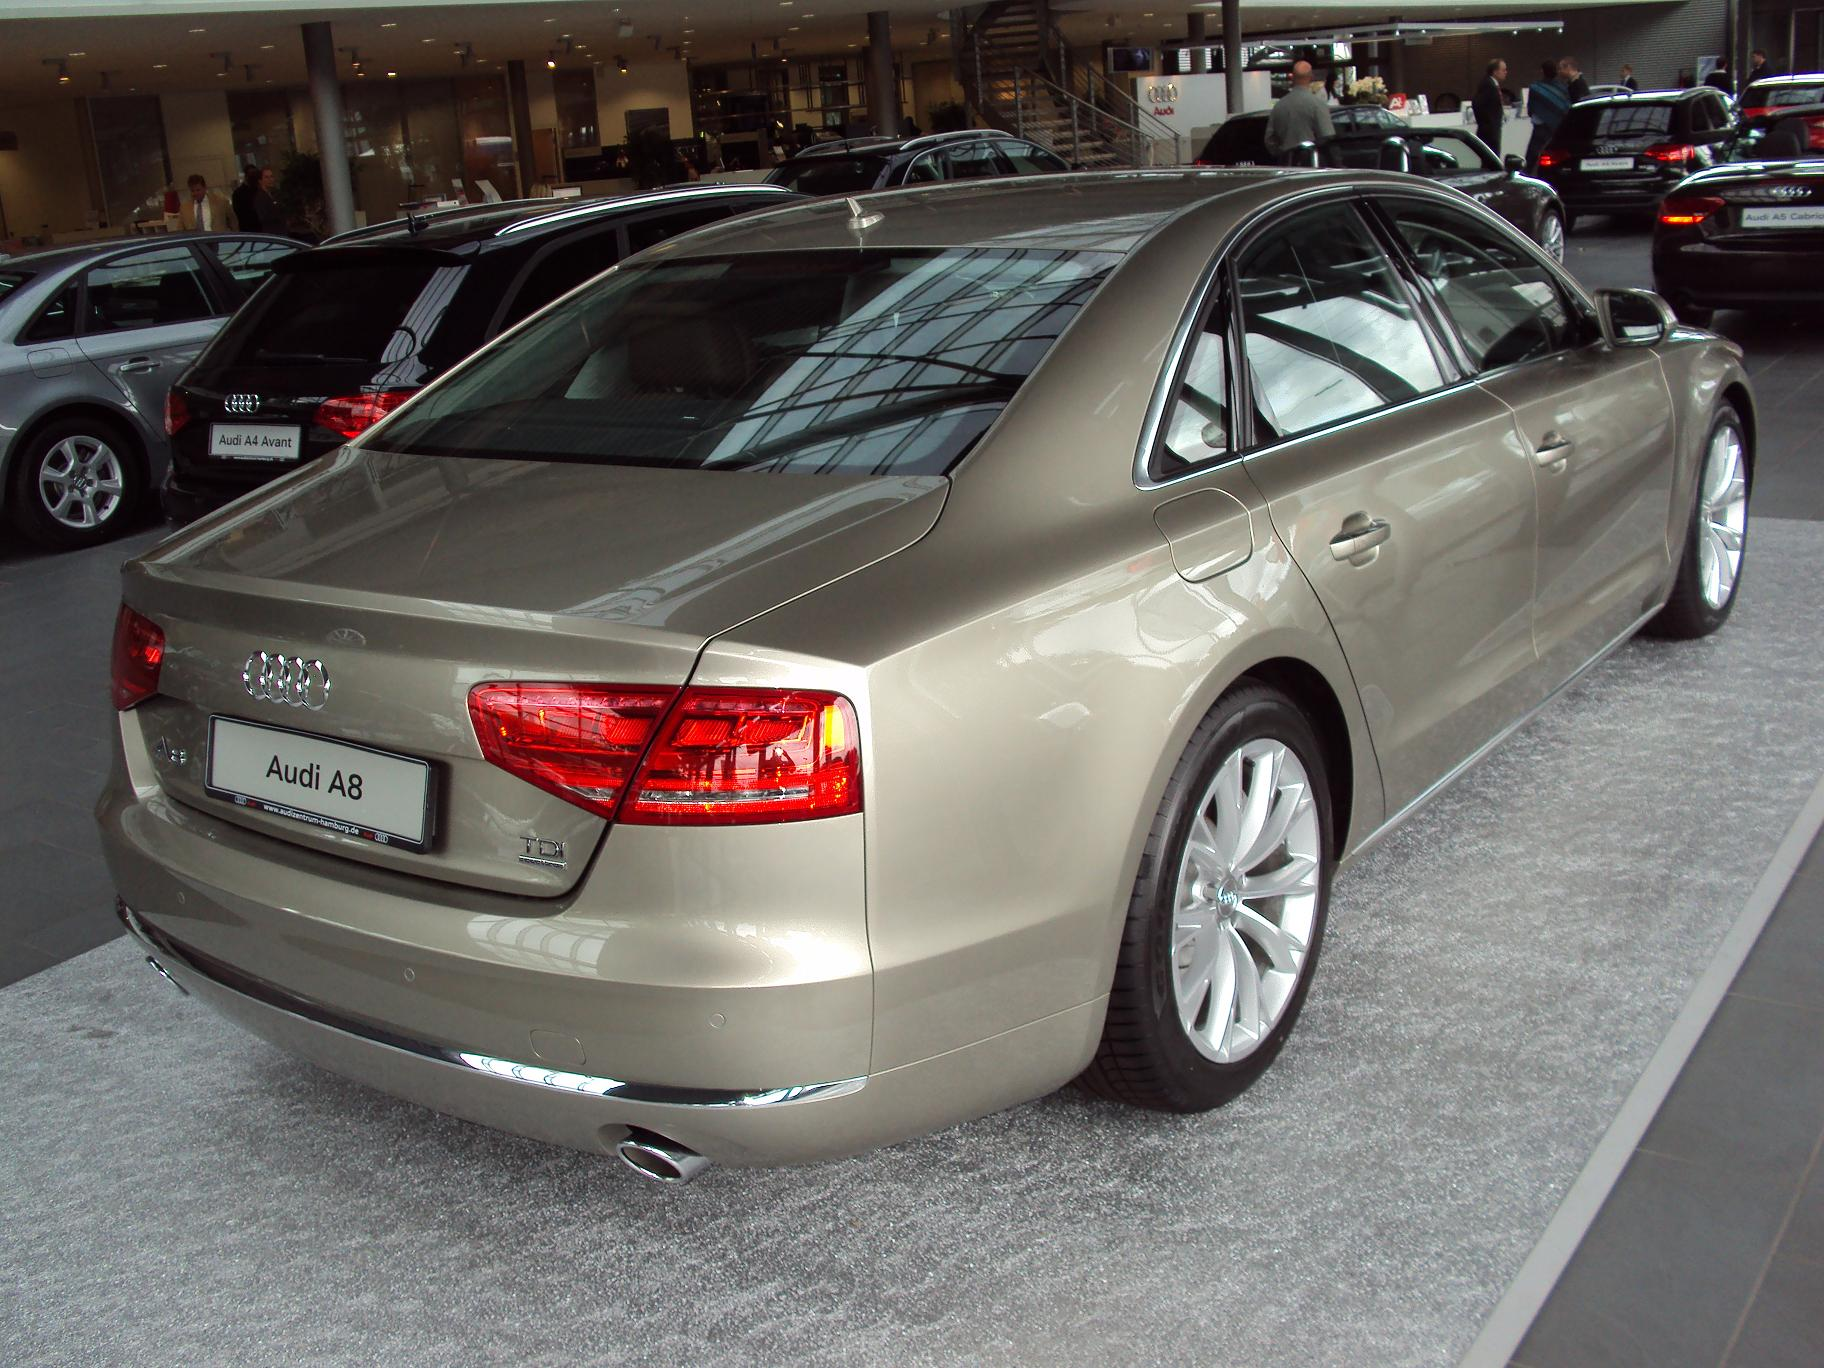 audi a8 long d4 4h facelift 2013 4 2 tdi clean. Black Bedroom Furniture Sets. Home Design Ideas